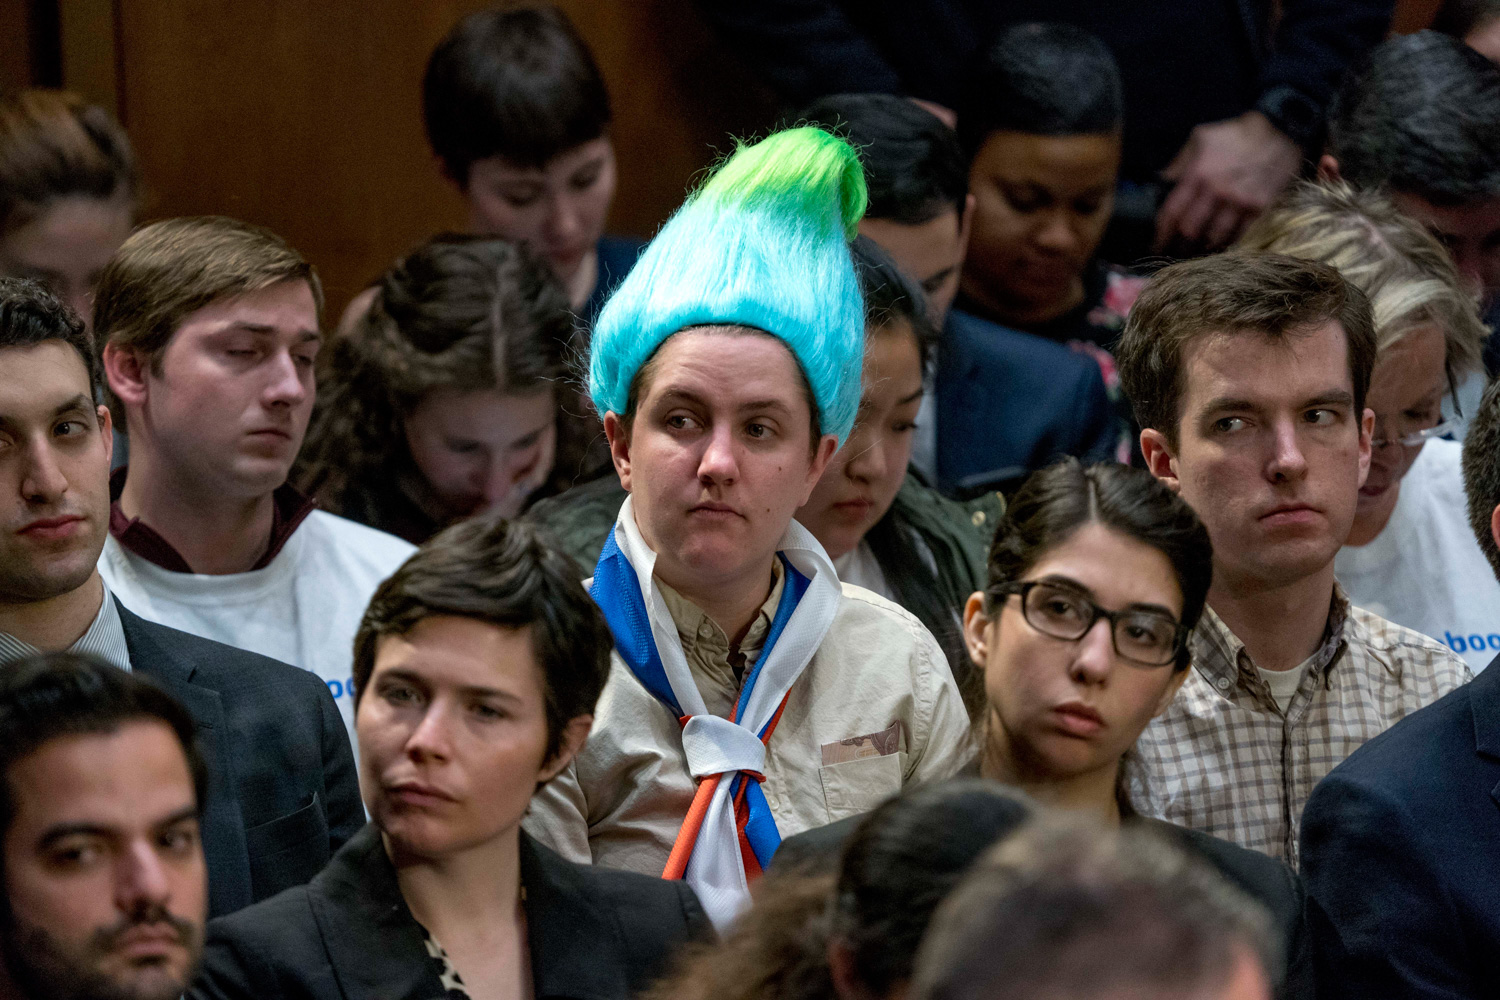 <div class='meta'><div class='origin-logo' data-origin='none'></div><span class='caption-text' data-credit='Andrew Harnik/AP Photo'>An audience member wearing a blue and green pointy wig, aiming to look like a Russian troll as Facebook CEO Mark Zuckerberg testifies.</span></div>